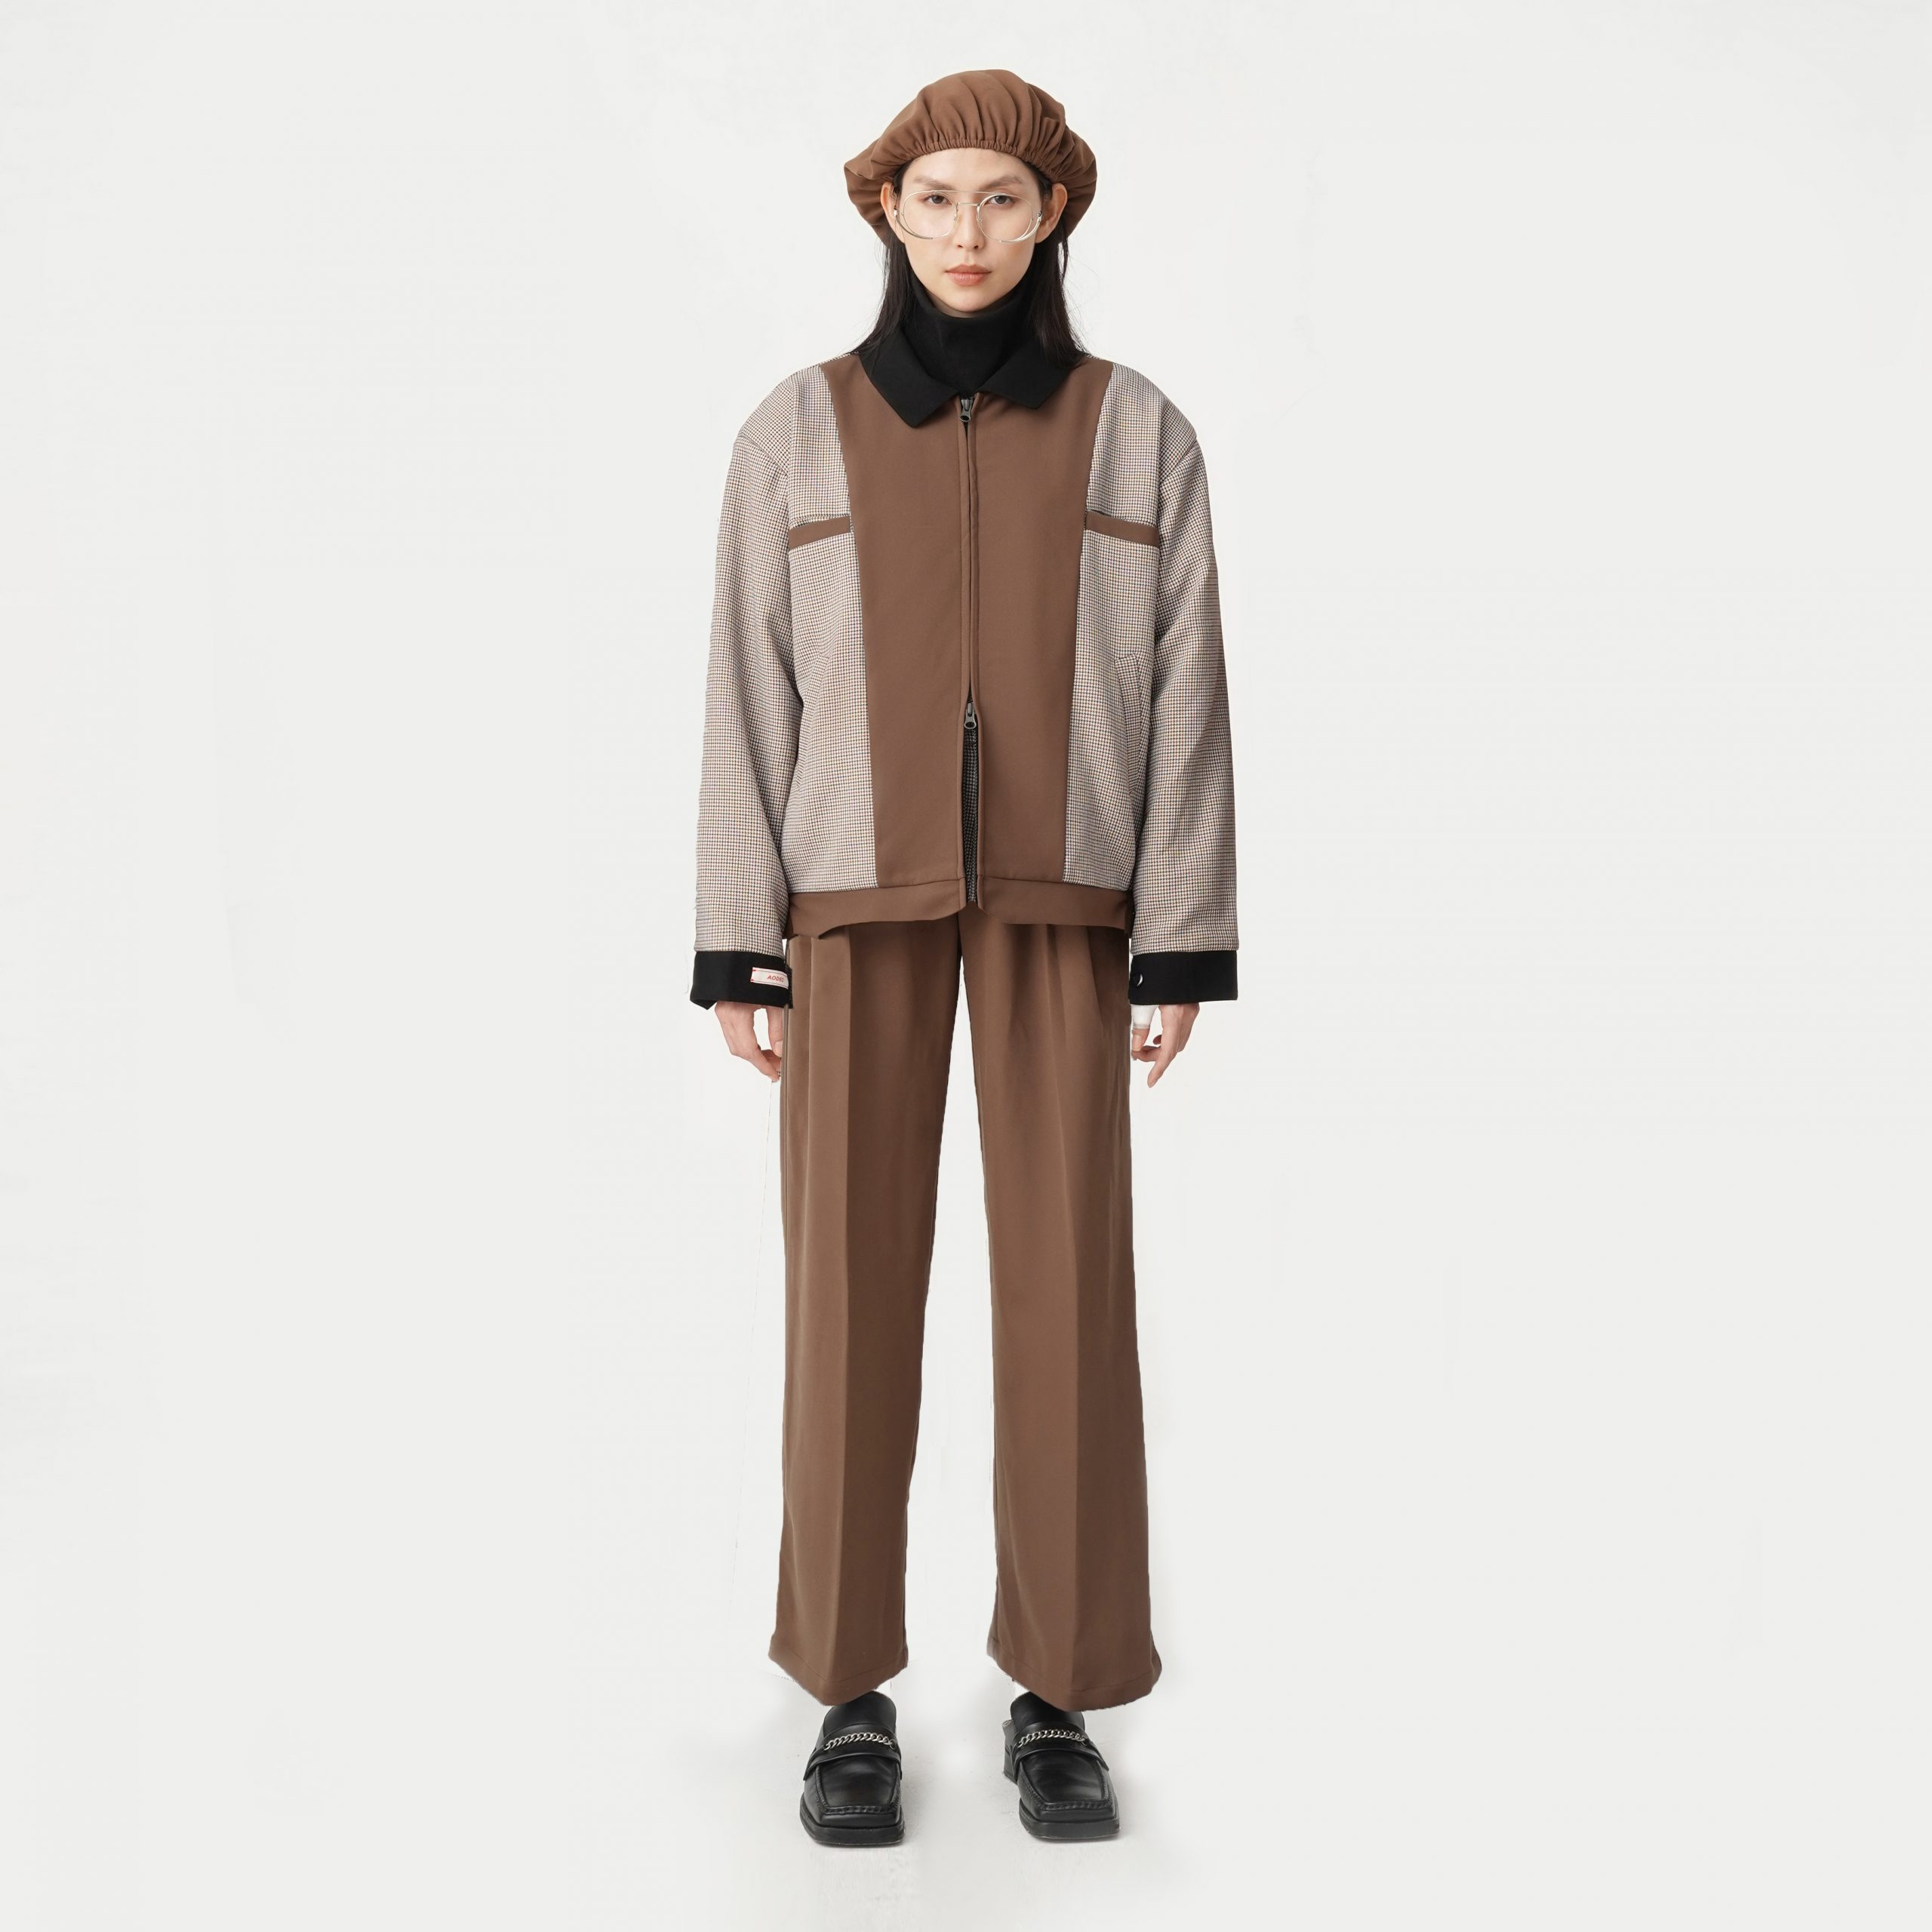 Aodec one jacket brown x Aodec two trousers brown scaled